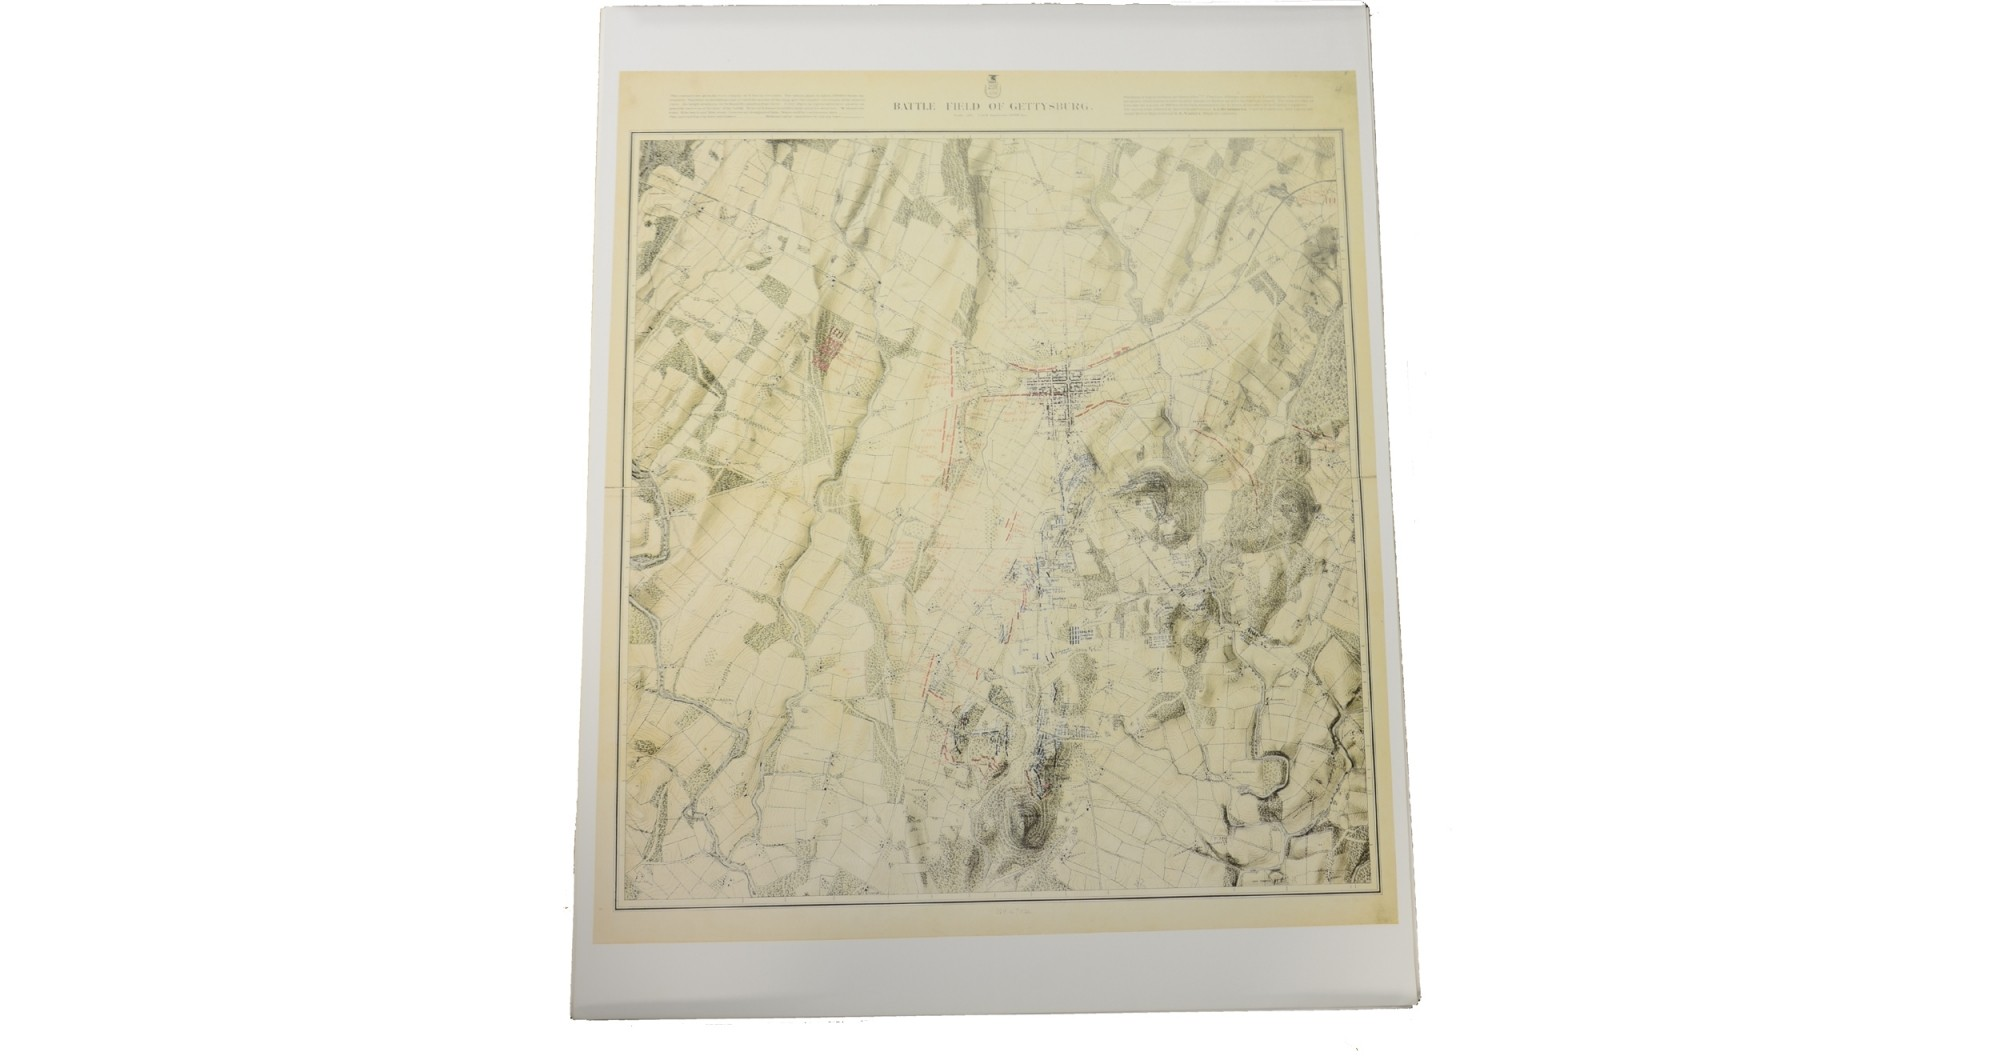 JOHN BACHELDER GETTYSBURG MAP SET - 28 MAPS COVERING THE THREE DAYS OF BATTLE  PLUS EAST CAVALRY FIELD